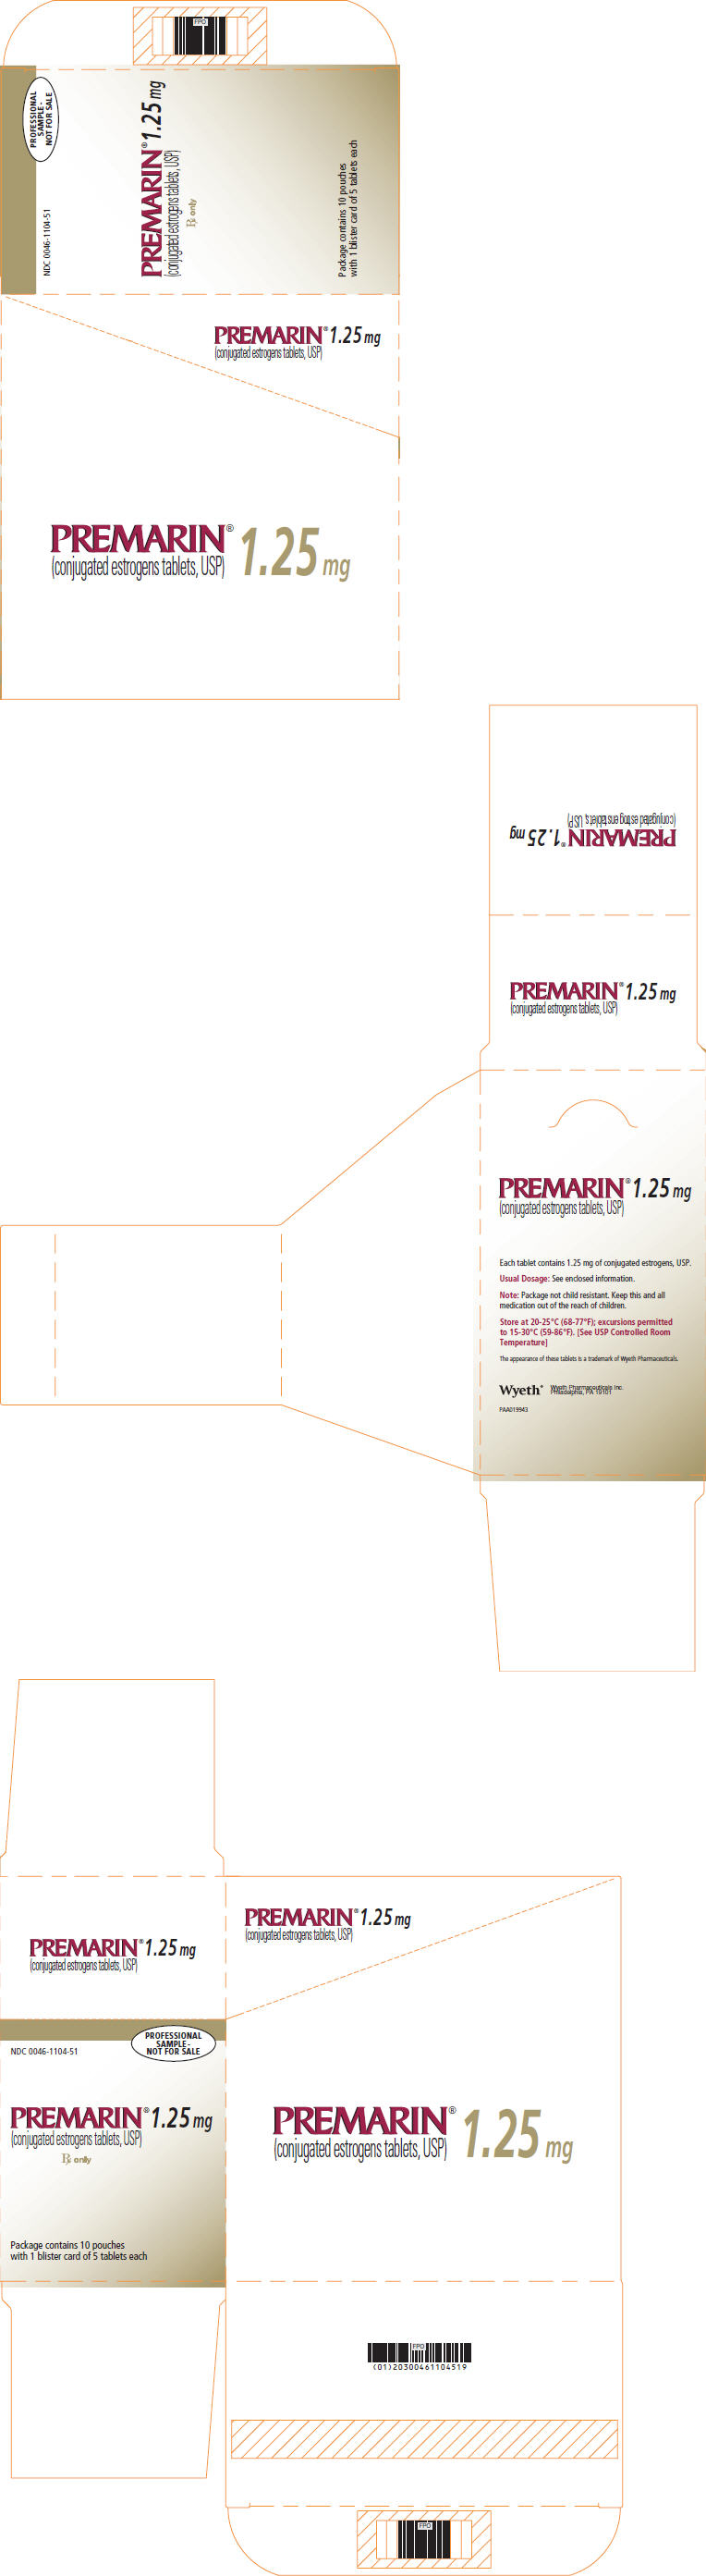 PRINCIPAL DISPLAY PANEL - 1.25 MG - CARTON